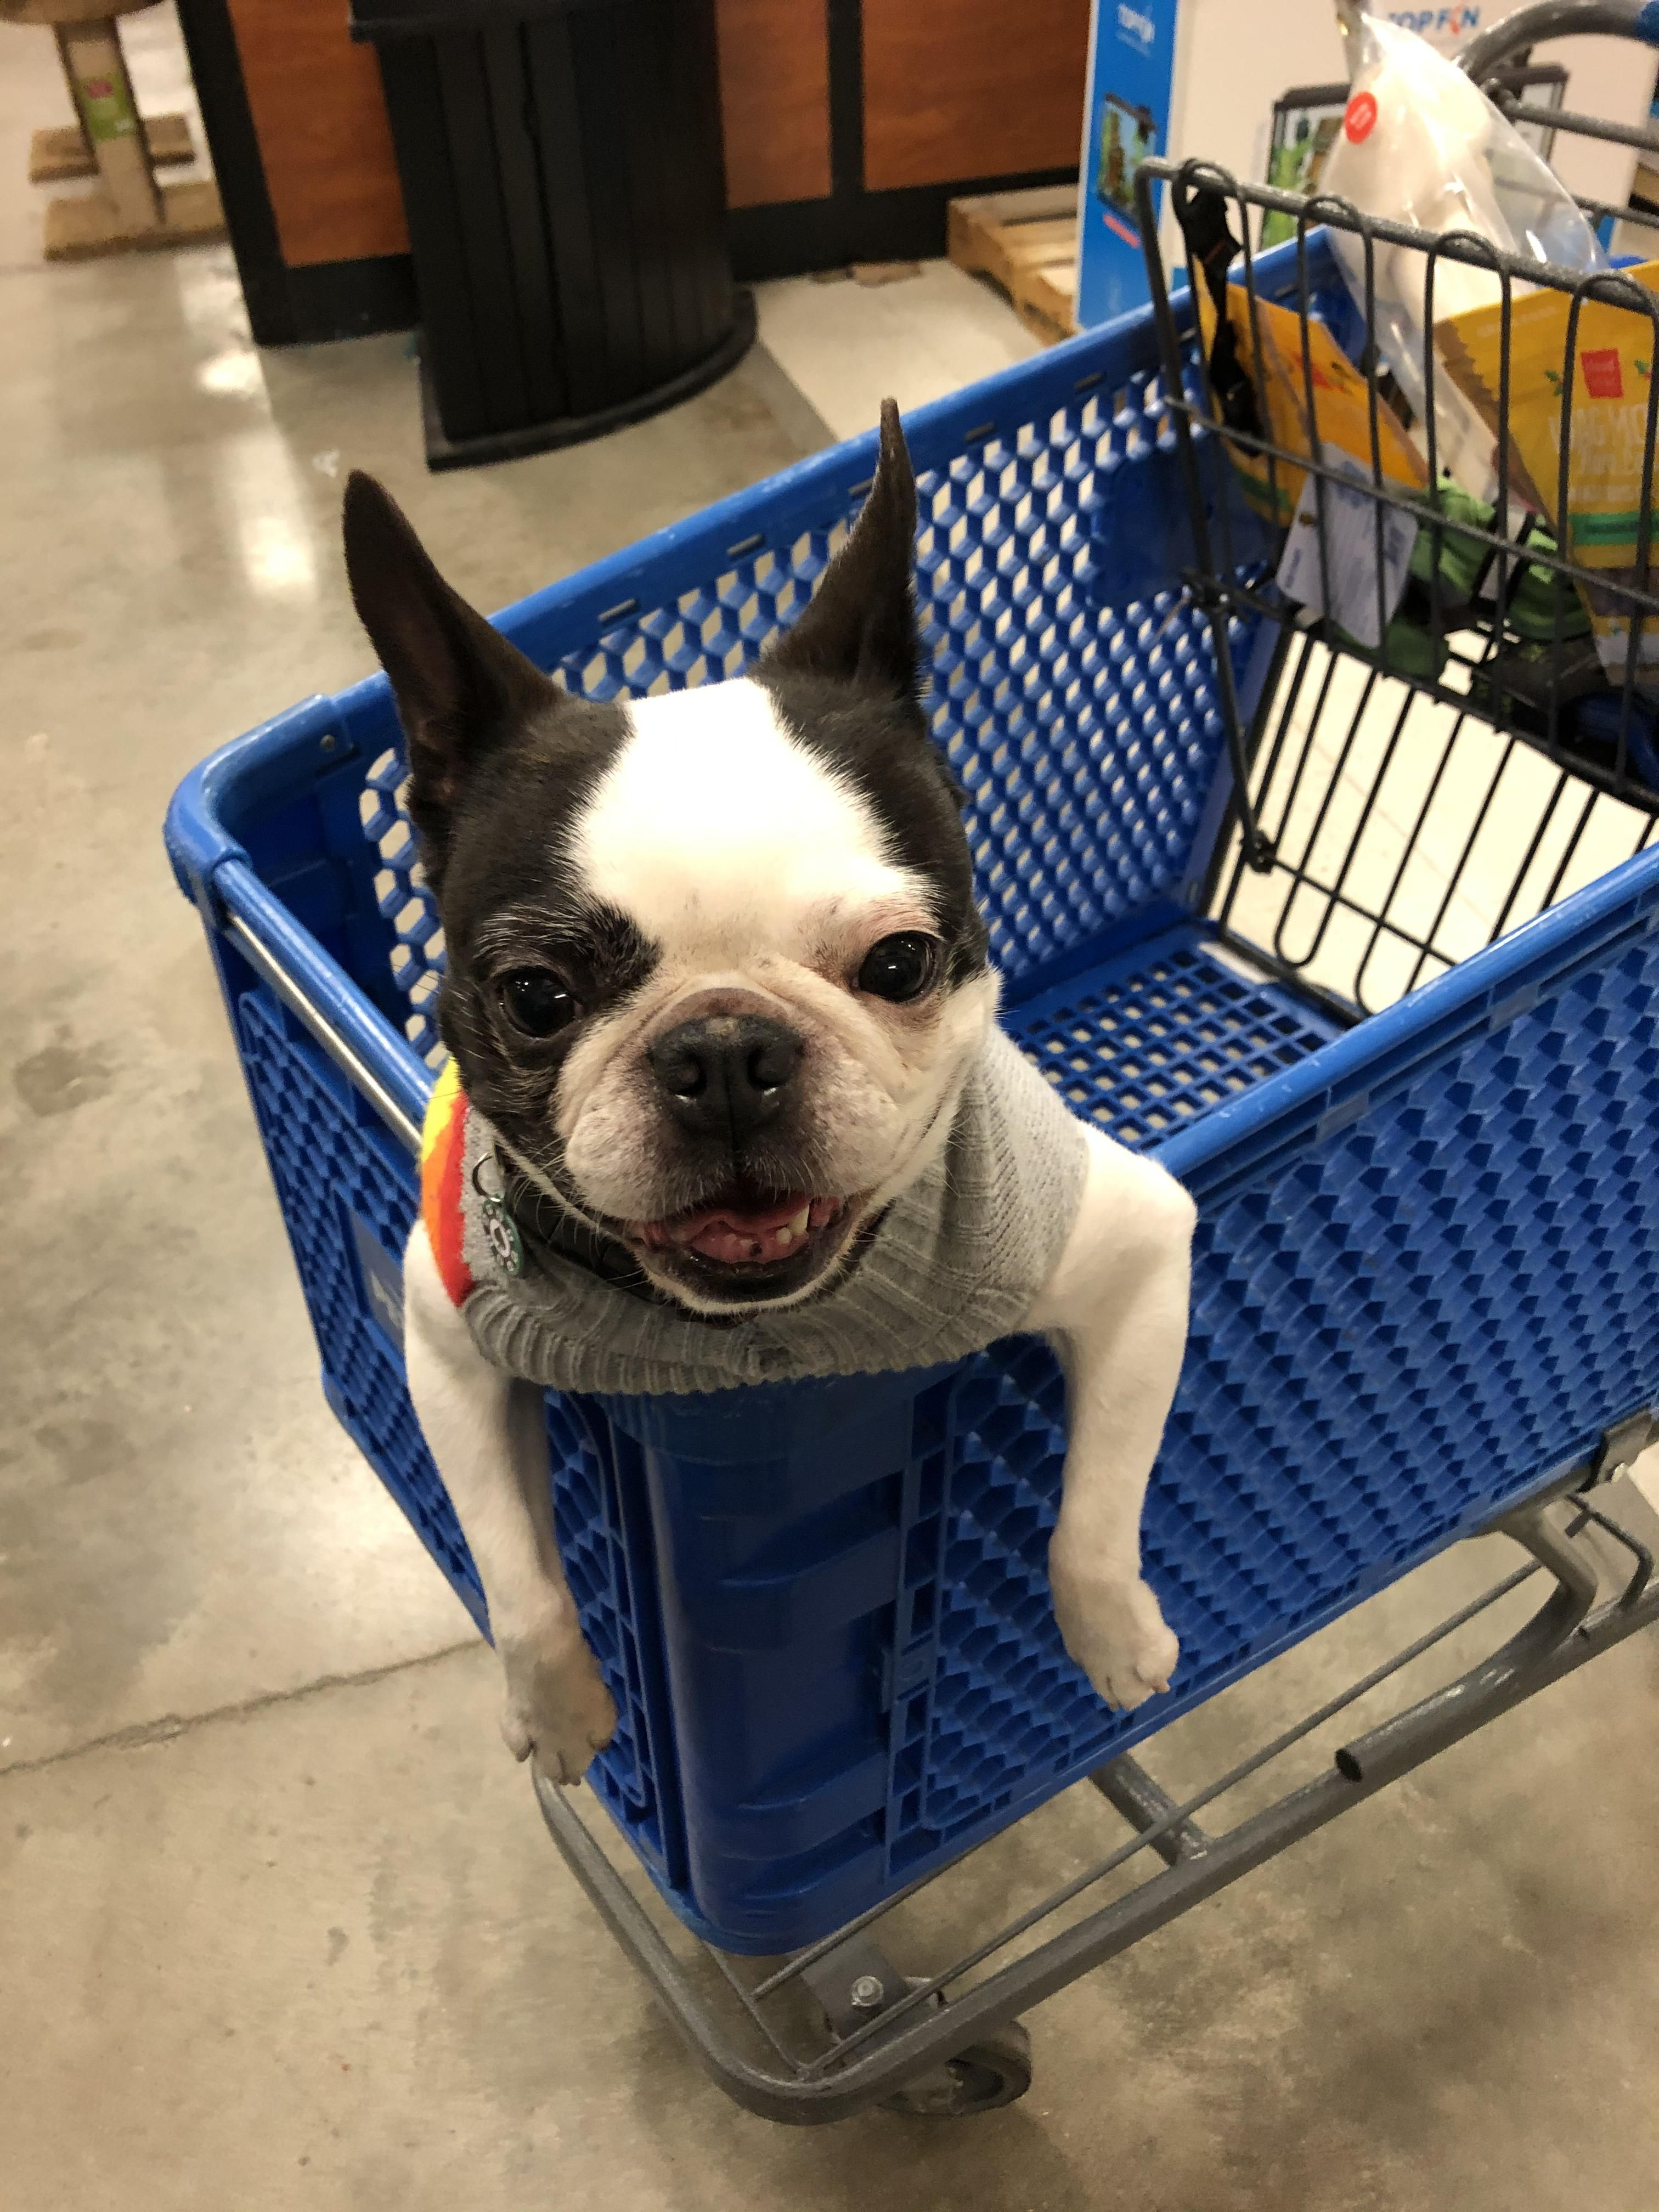 Took Roulette To Petsmart And Ended Up A Great Happy Dog Pic Bostonterrier Bostonterrierpuppy Boston In 2020 Boston Terrier Puppy Boston Terrier Dog Boston Terrier